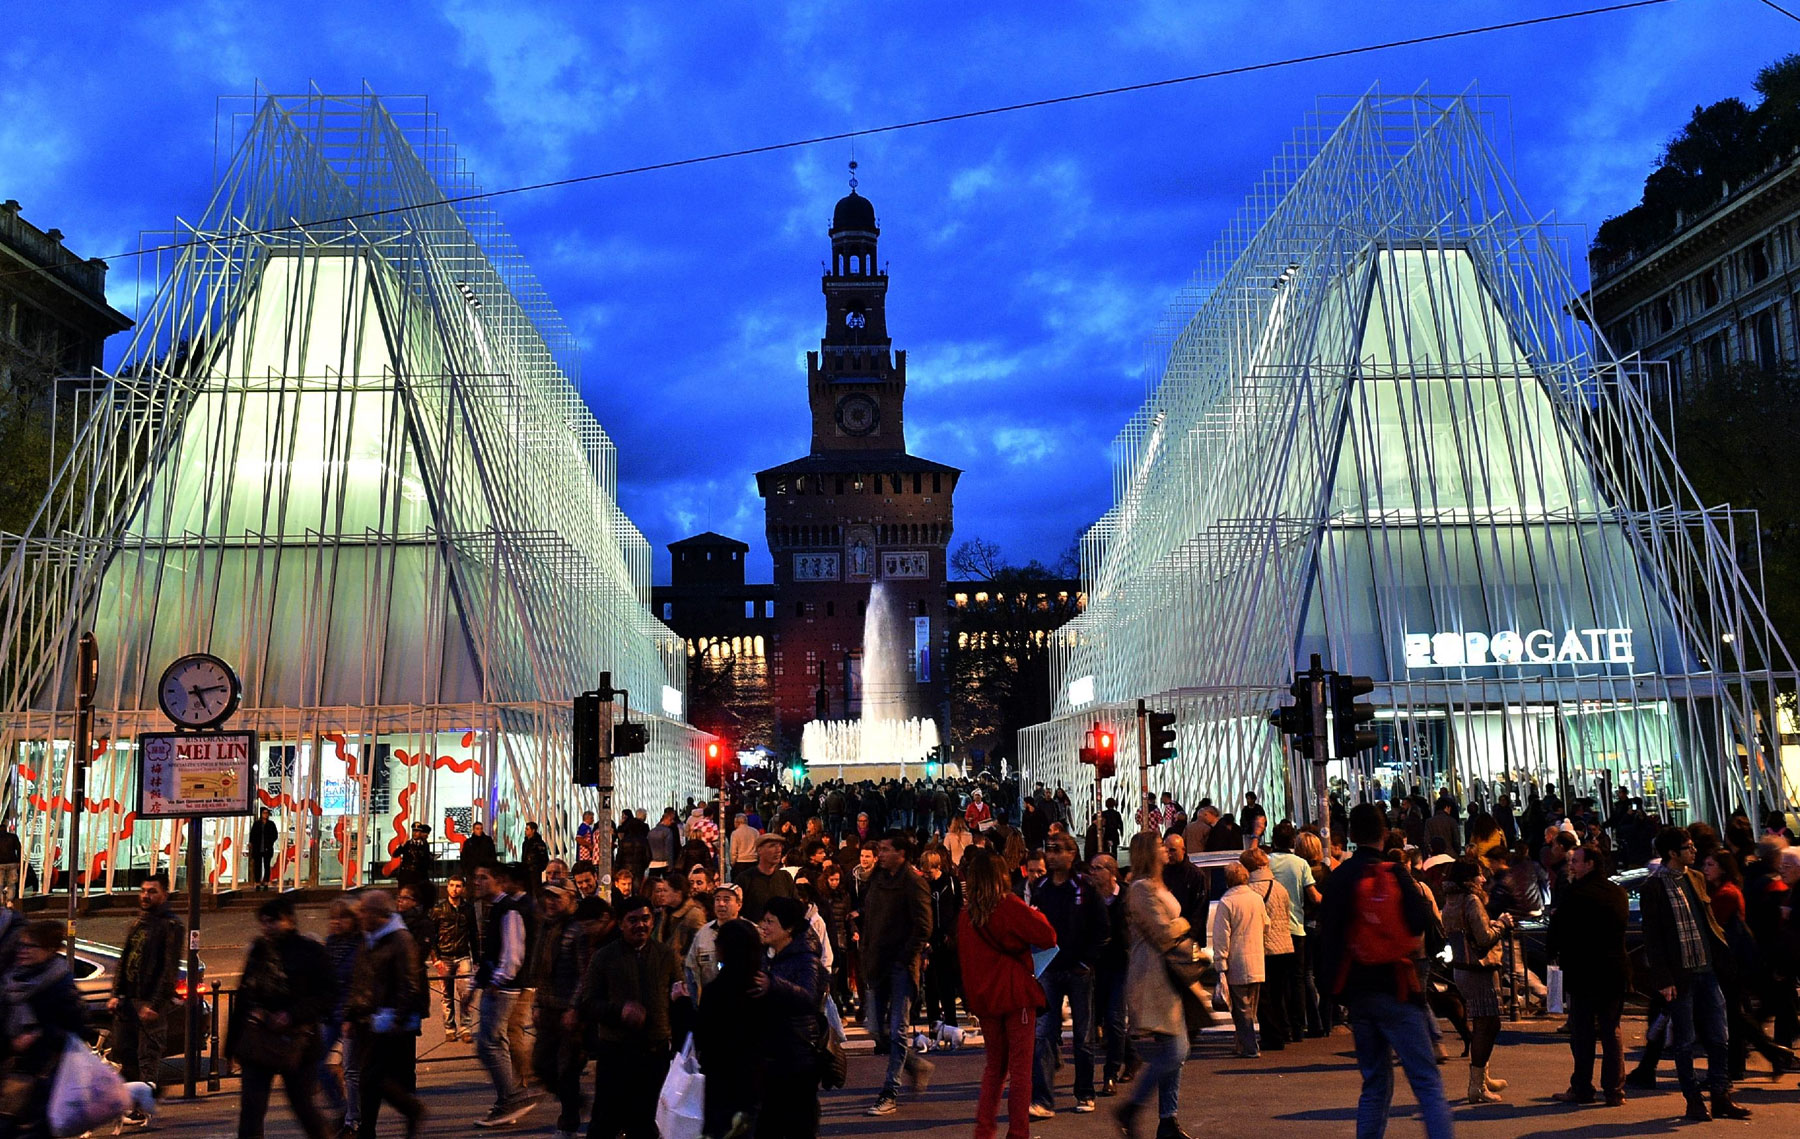 Milan, Italy - The World's Fashion Capital and Much More